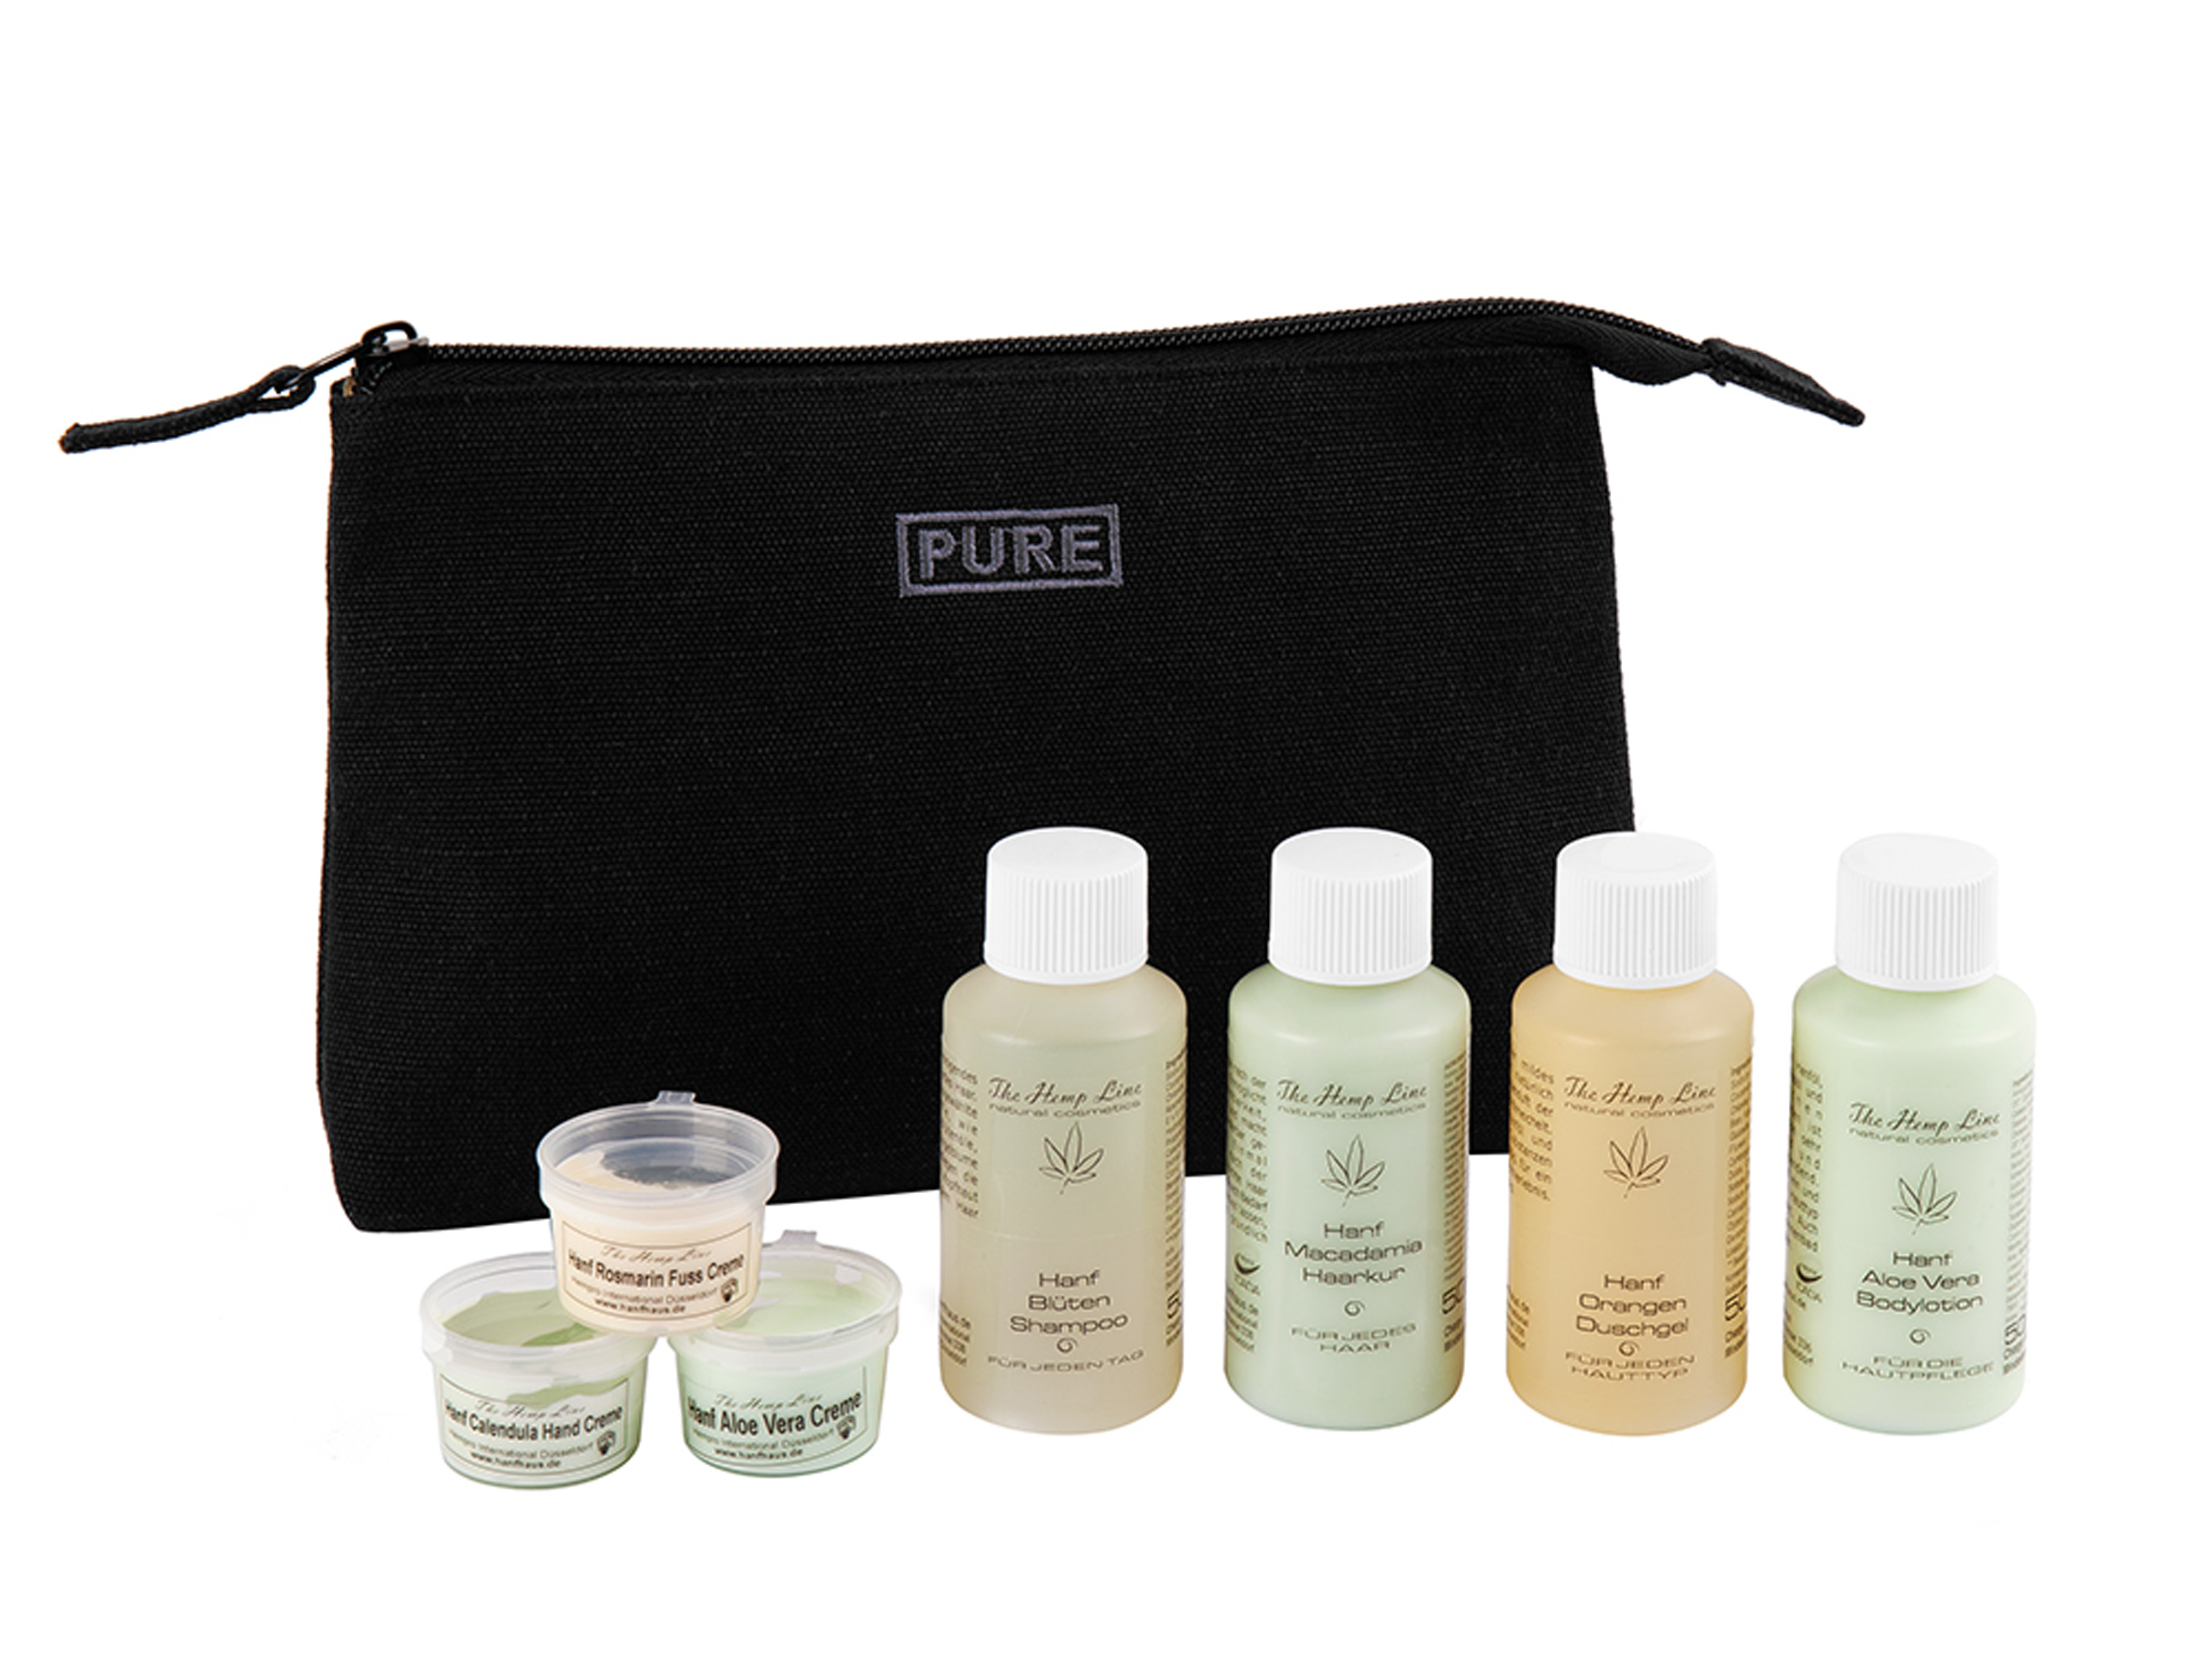 "<a href=""https://hanfhaus.de/en/the-hemp-line-giftset-hemp-mini-cosmetics-with-cosmetic-bag-p-63299100.html\"" itemprop=\""url\""><span itemprop=\""name\"">Giftset Hemp Mini Cosmetics with Cosmetic Bag</span></a><br /><small>[<span itemprop=\""model\"">63299100</span>]</small>"